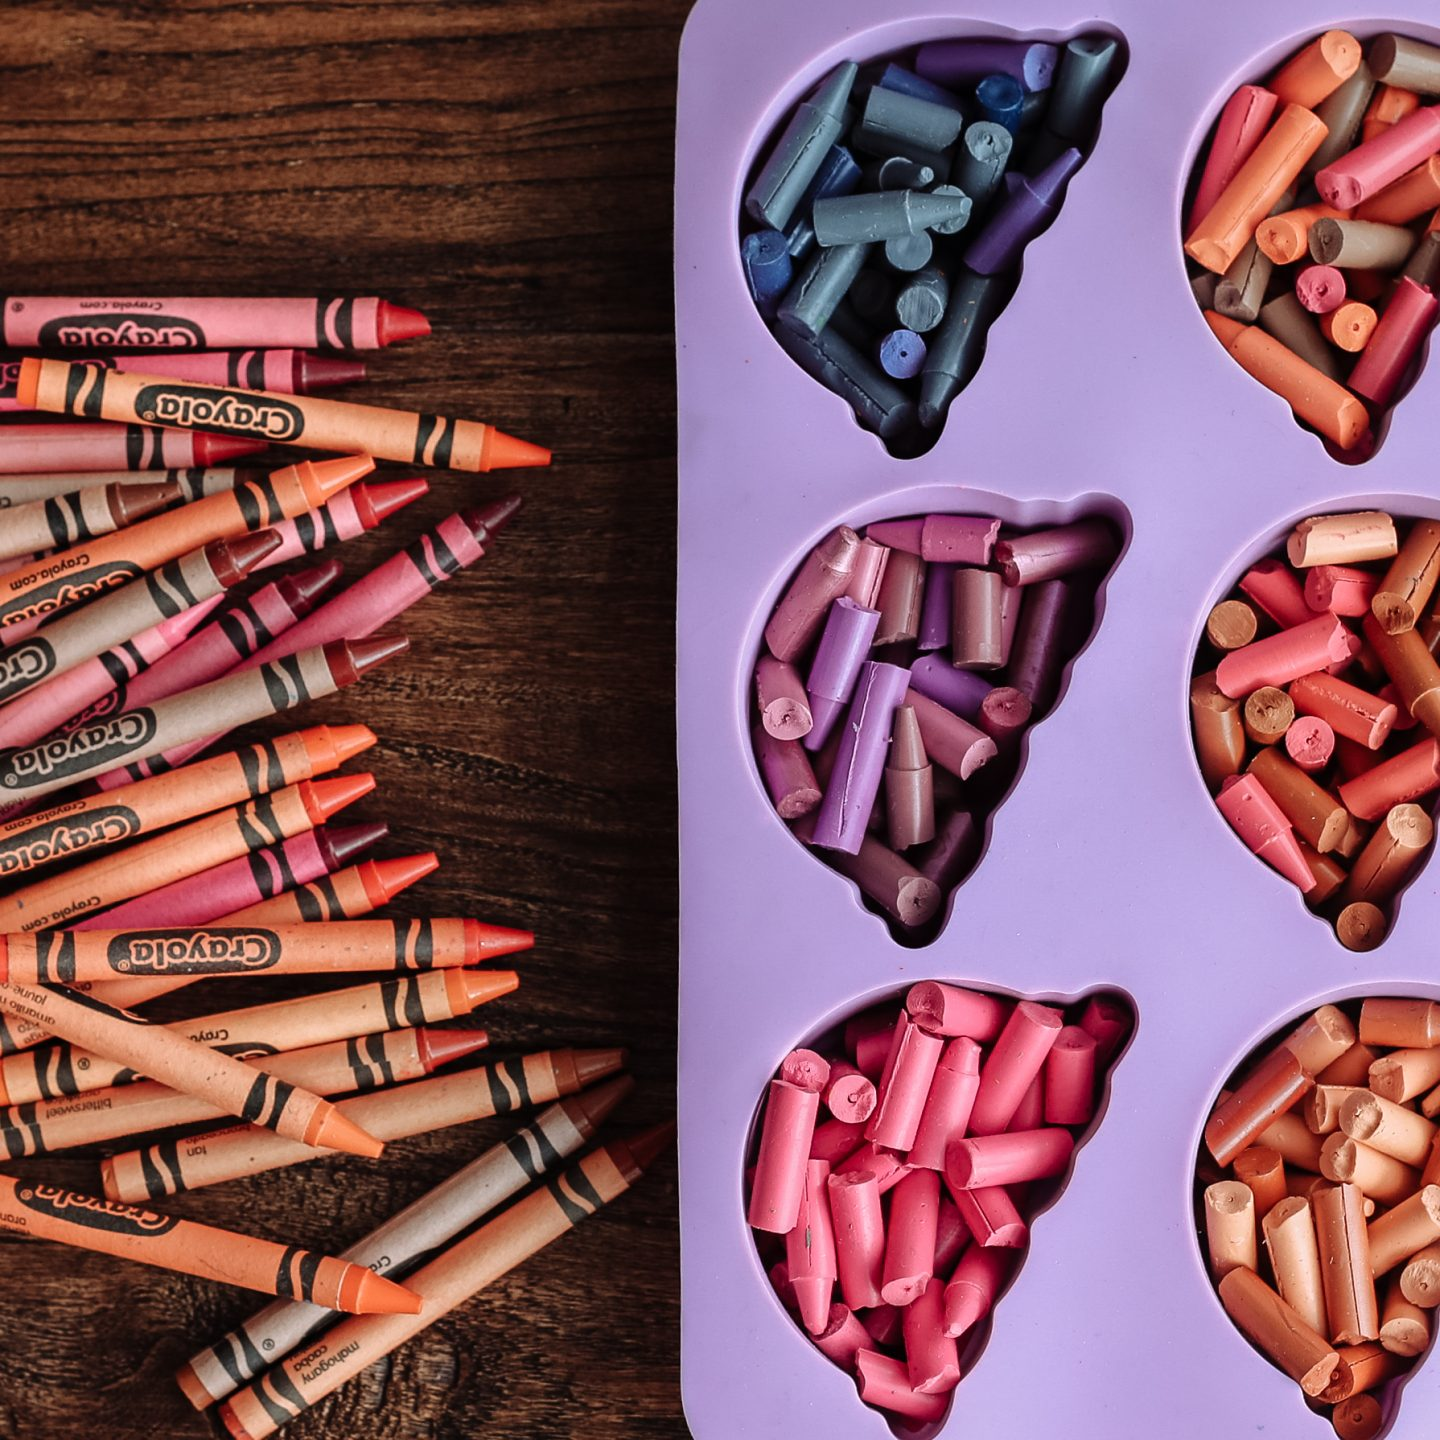 diy crayons using silicone molds